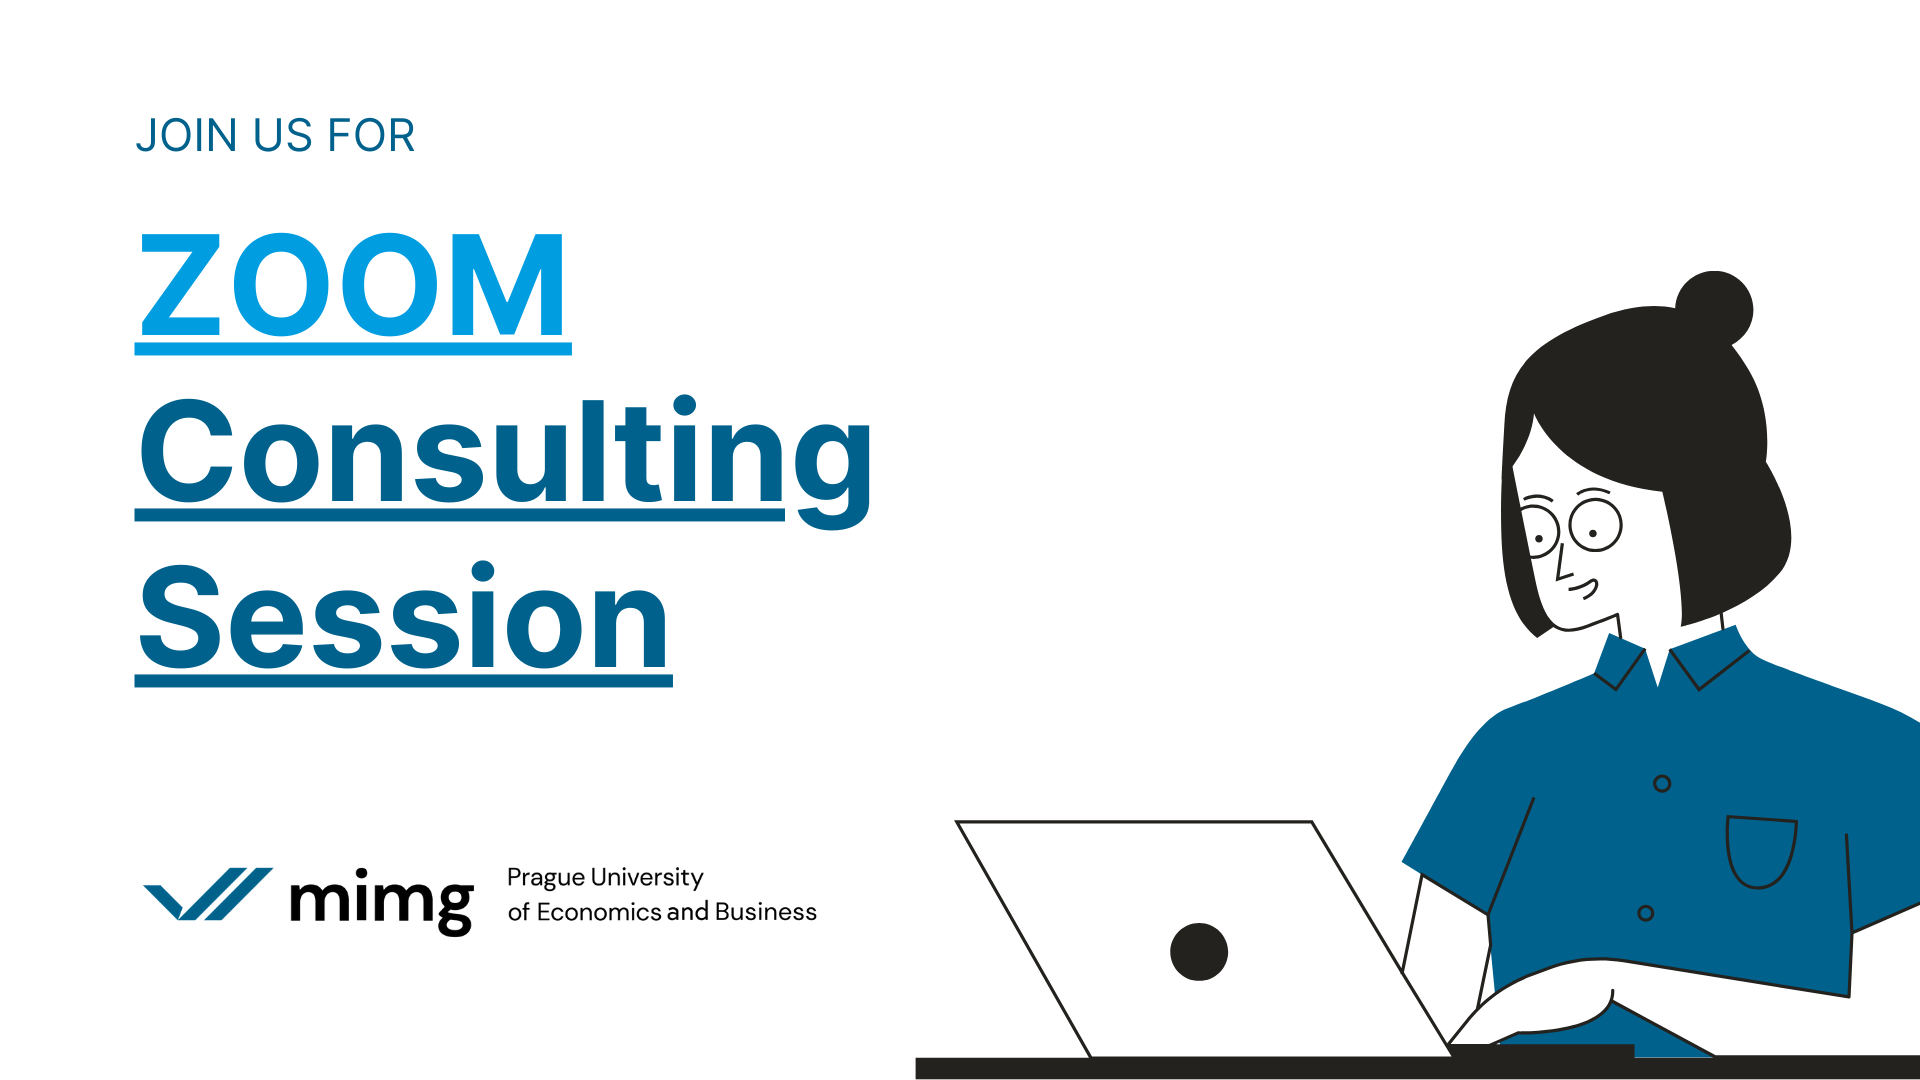 ZOOM Consulting Session /every Friday/